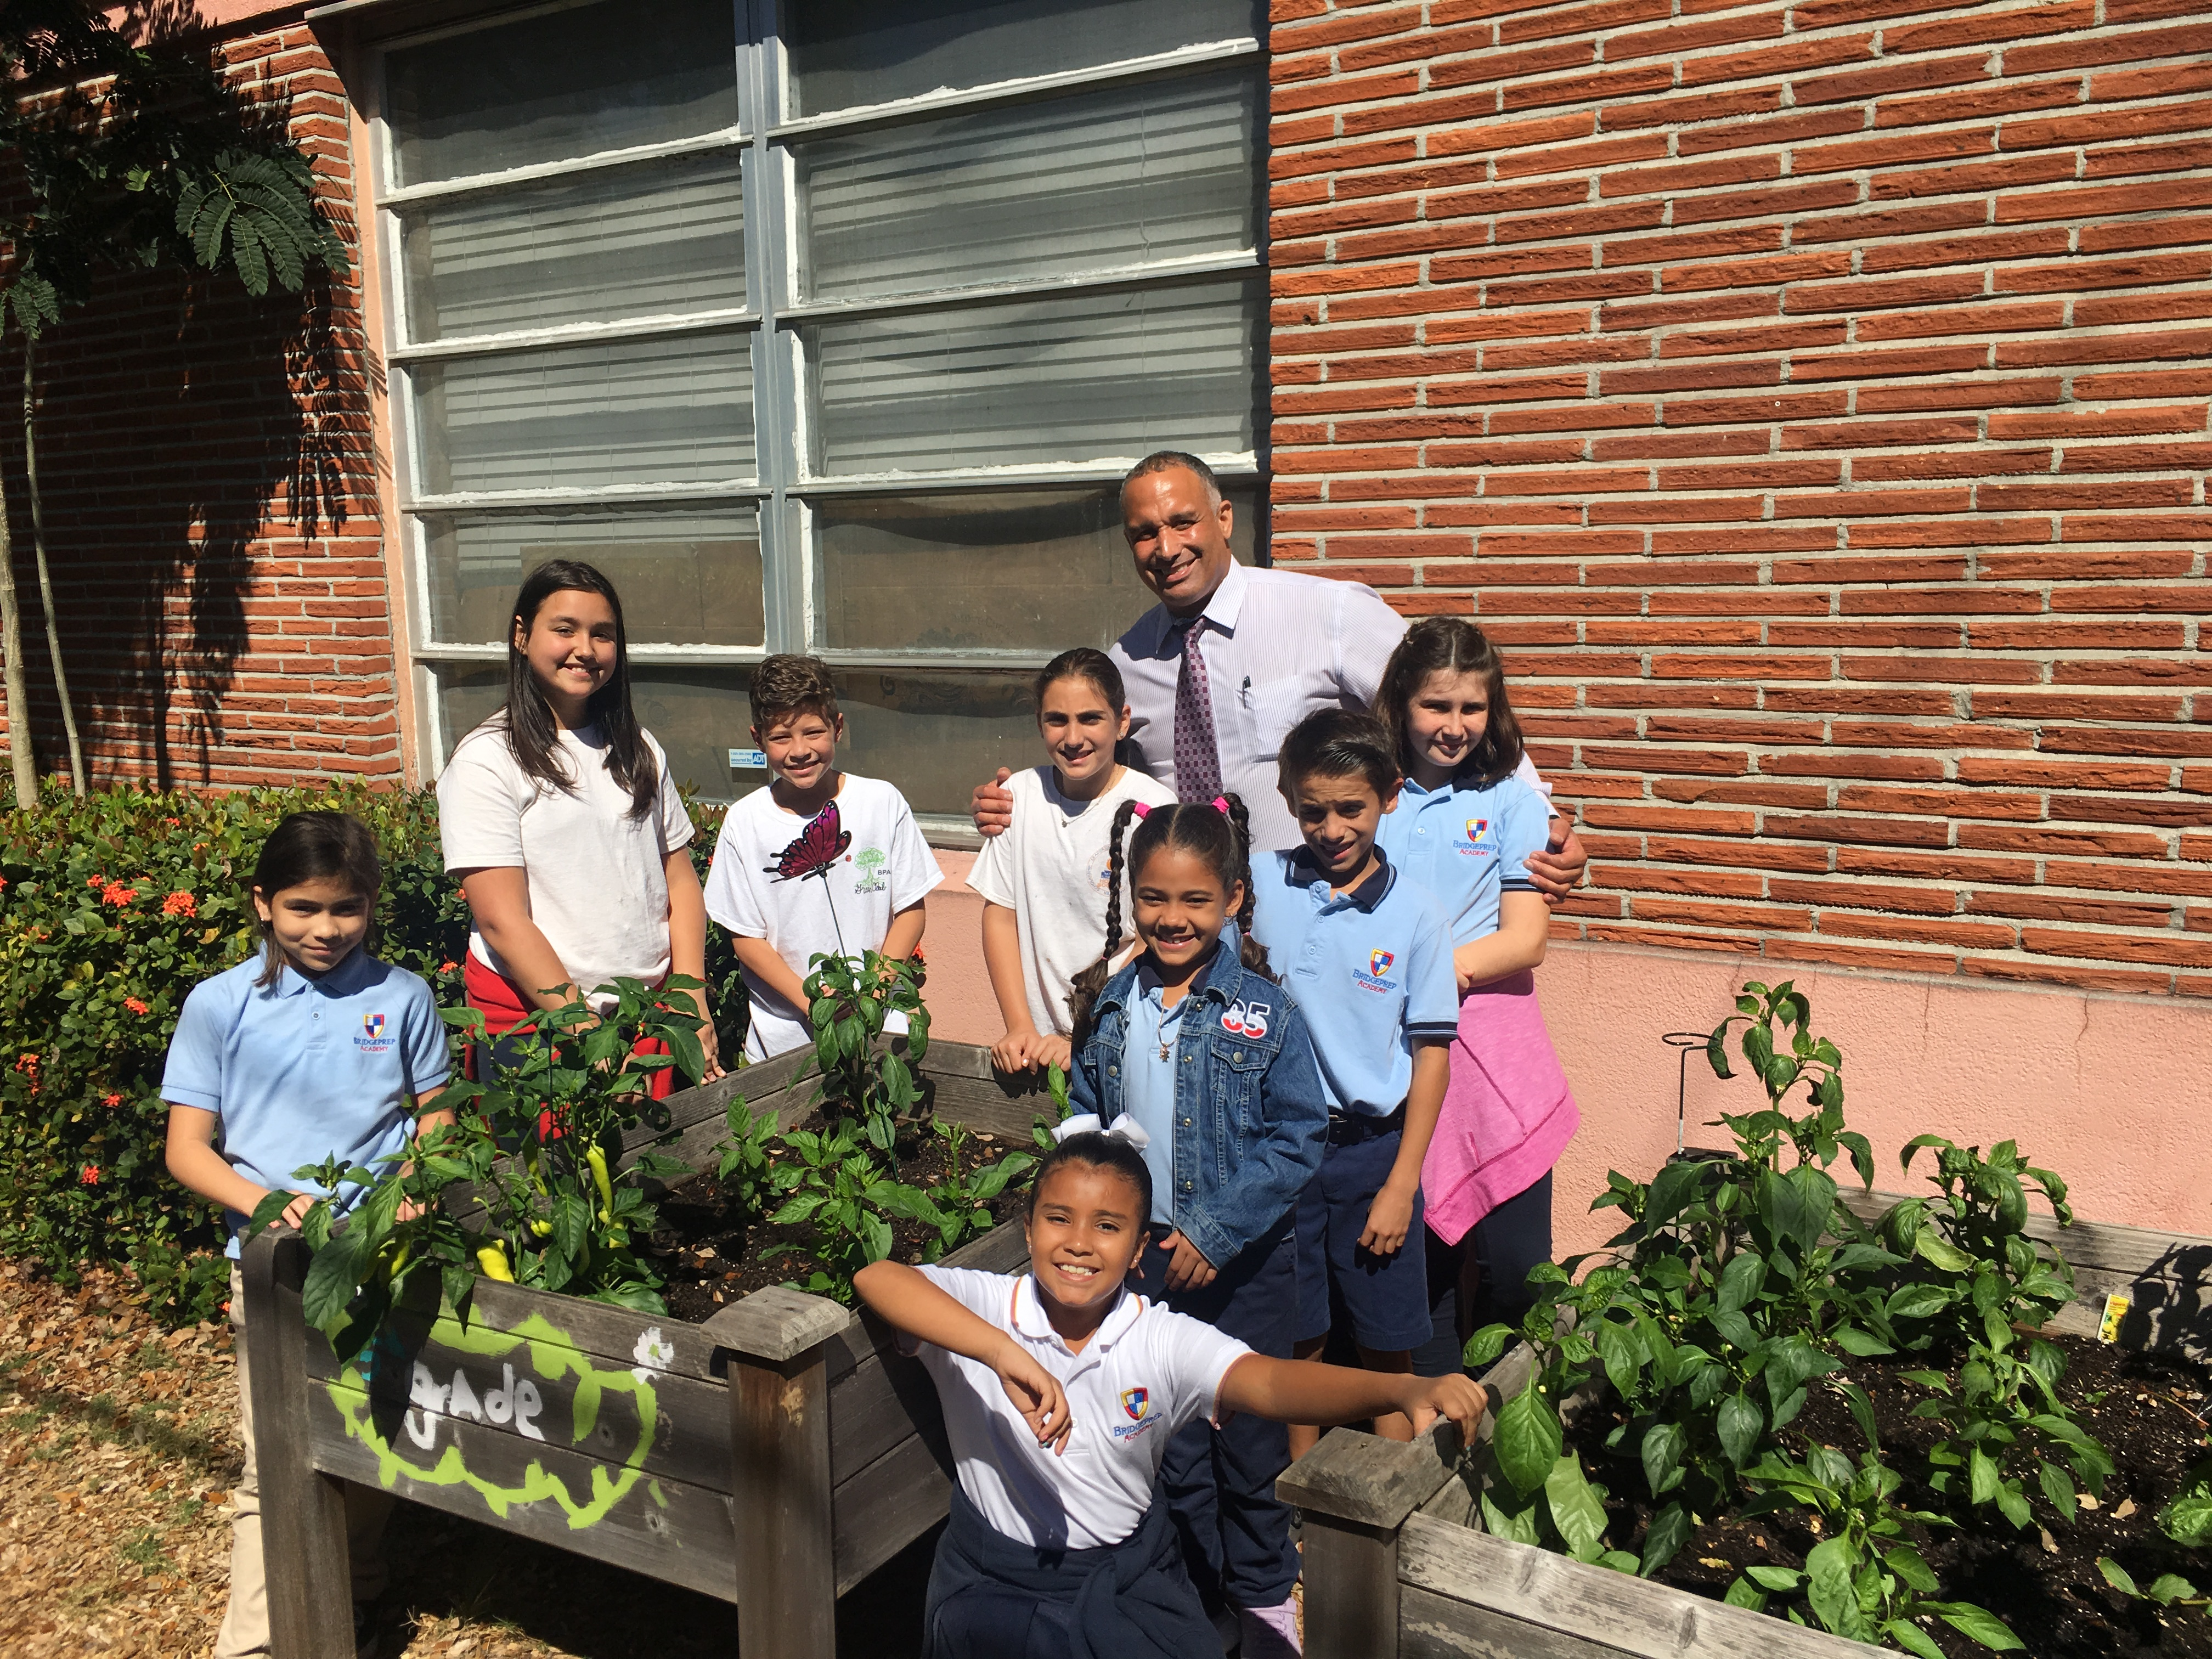 An Urban Garden Inspires, Engages Students